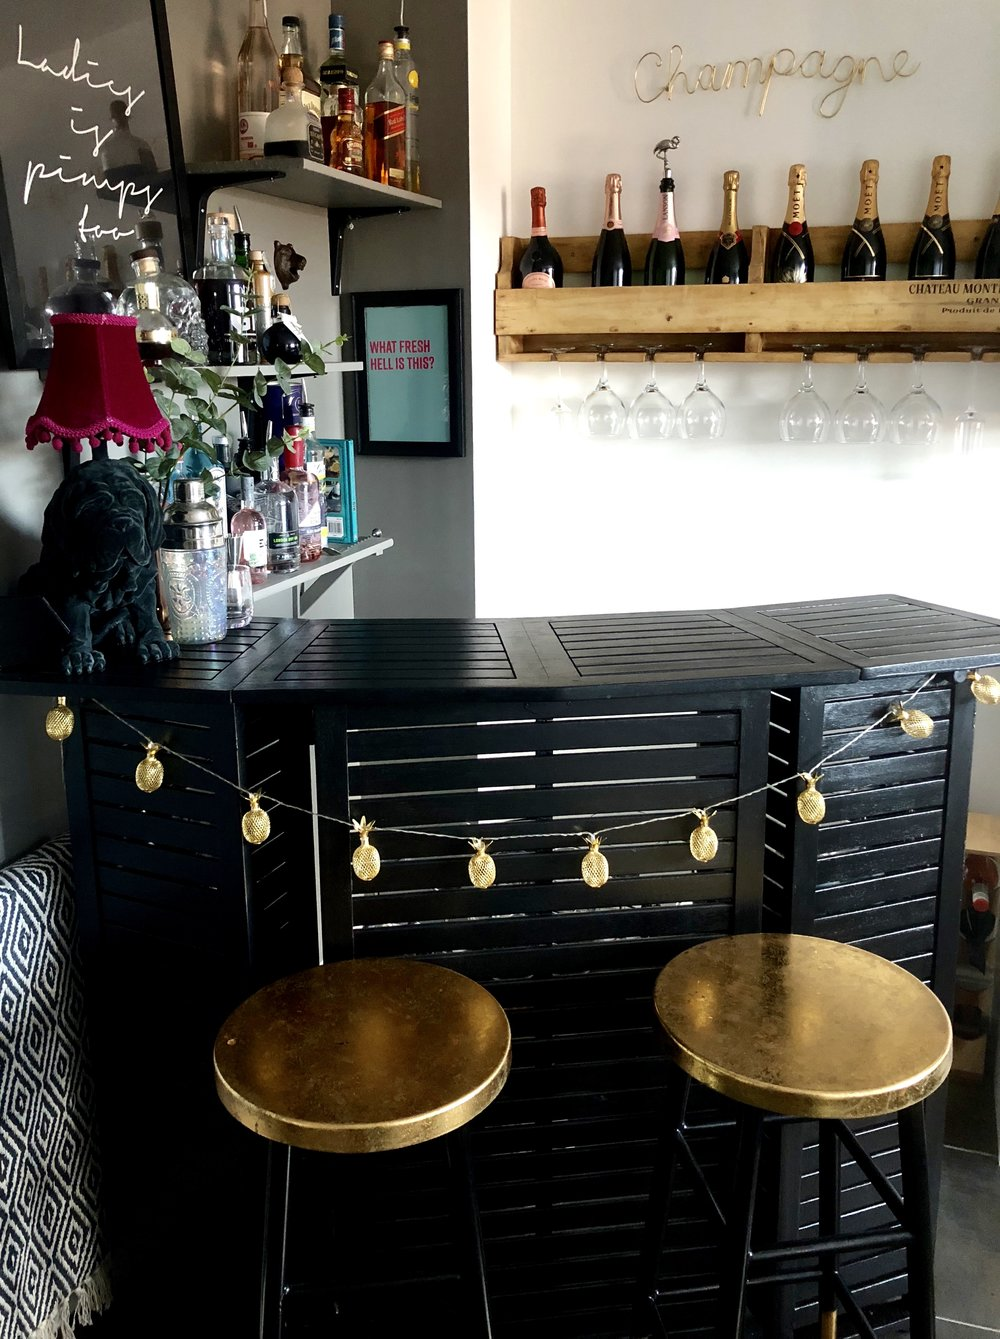 Beth's bar in the corner of her kitchen is from   Wayfair.co.uk,  she  painted it in Farrow & Ball 'Pitch Black' and added gold accents..... you can see more of Beth's home on her home tour   HERE      @bethshehata